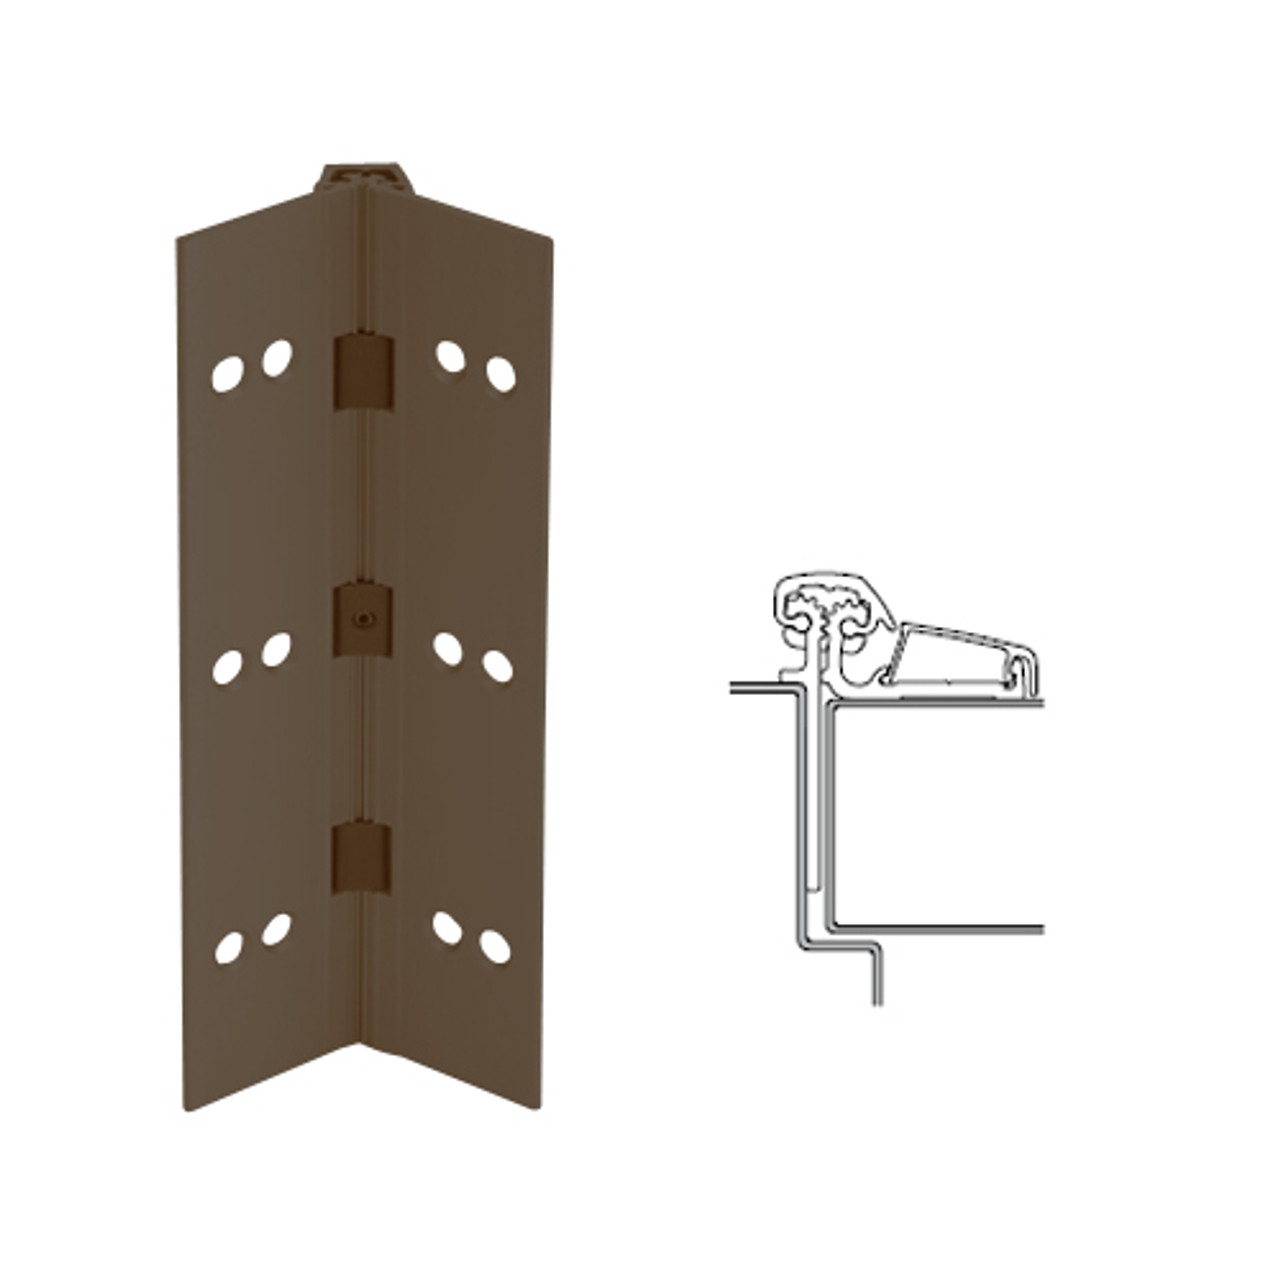 053XY-313AN-120 IVES Adjustable Half Surface Continuous Geared Hinges in Dark Bronze Anodized